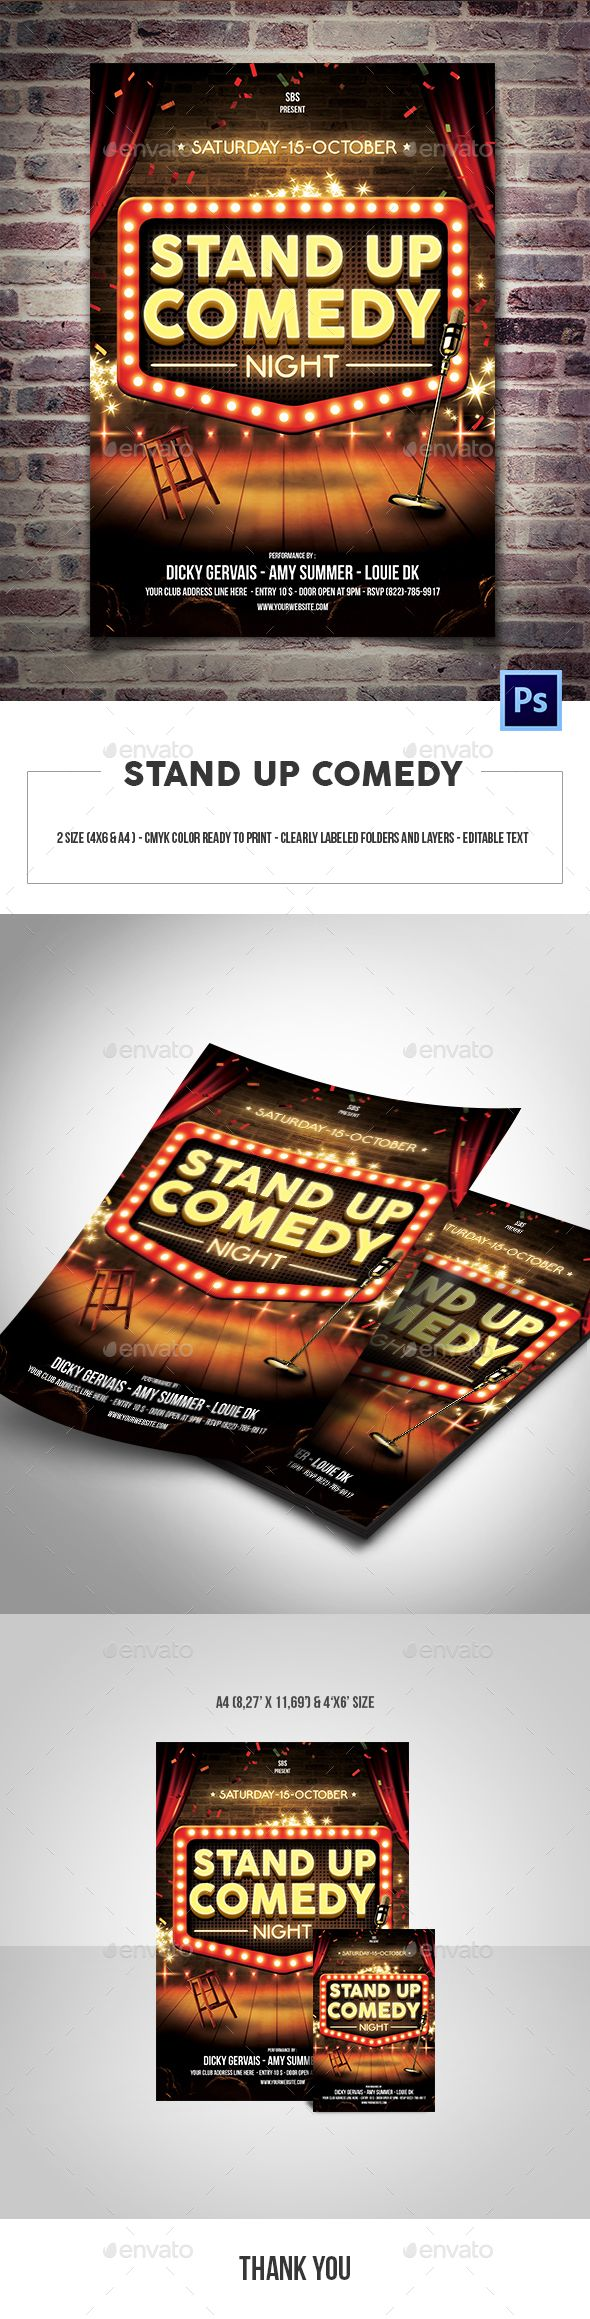 stand up comedy flyer template  u2014 psd template  u2022 only